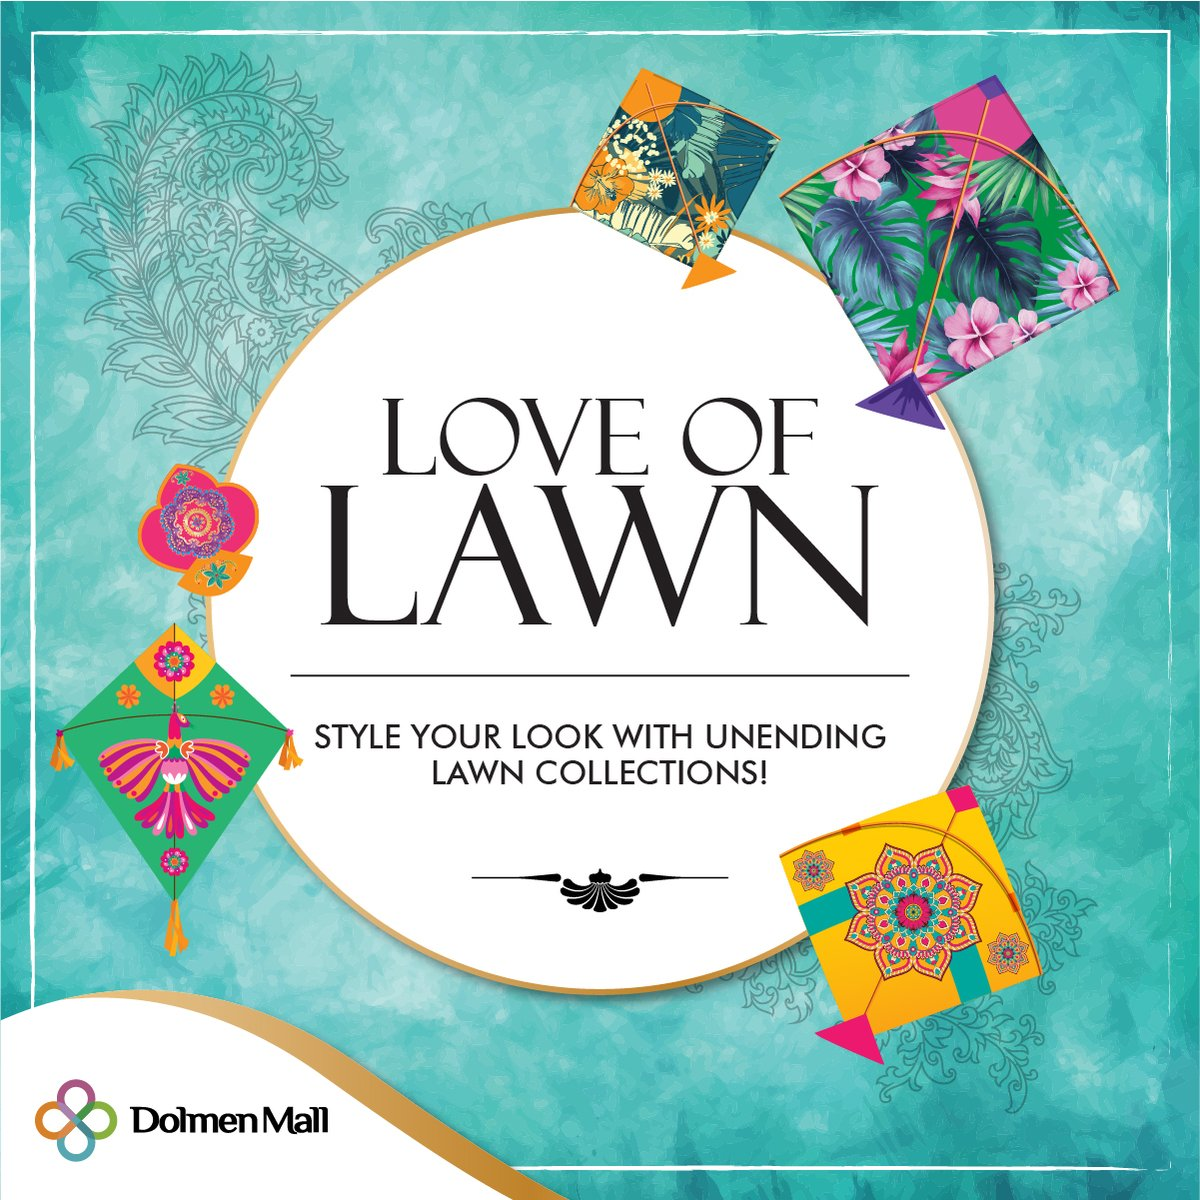 The Love of Lawn at Dolmen Malls is at all-time high. With the latest Lawn collections launching at all your favourite brands, rush to the mall to get your hands on the trendiest designs, cuts, and colours!  #LoveOfLawn #GrandLawnFiesta #Lawn #Spring #Summer #NewCollection